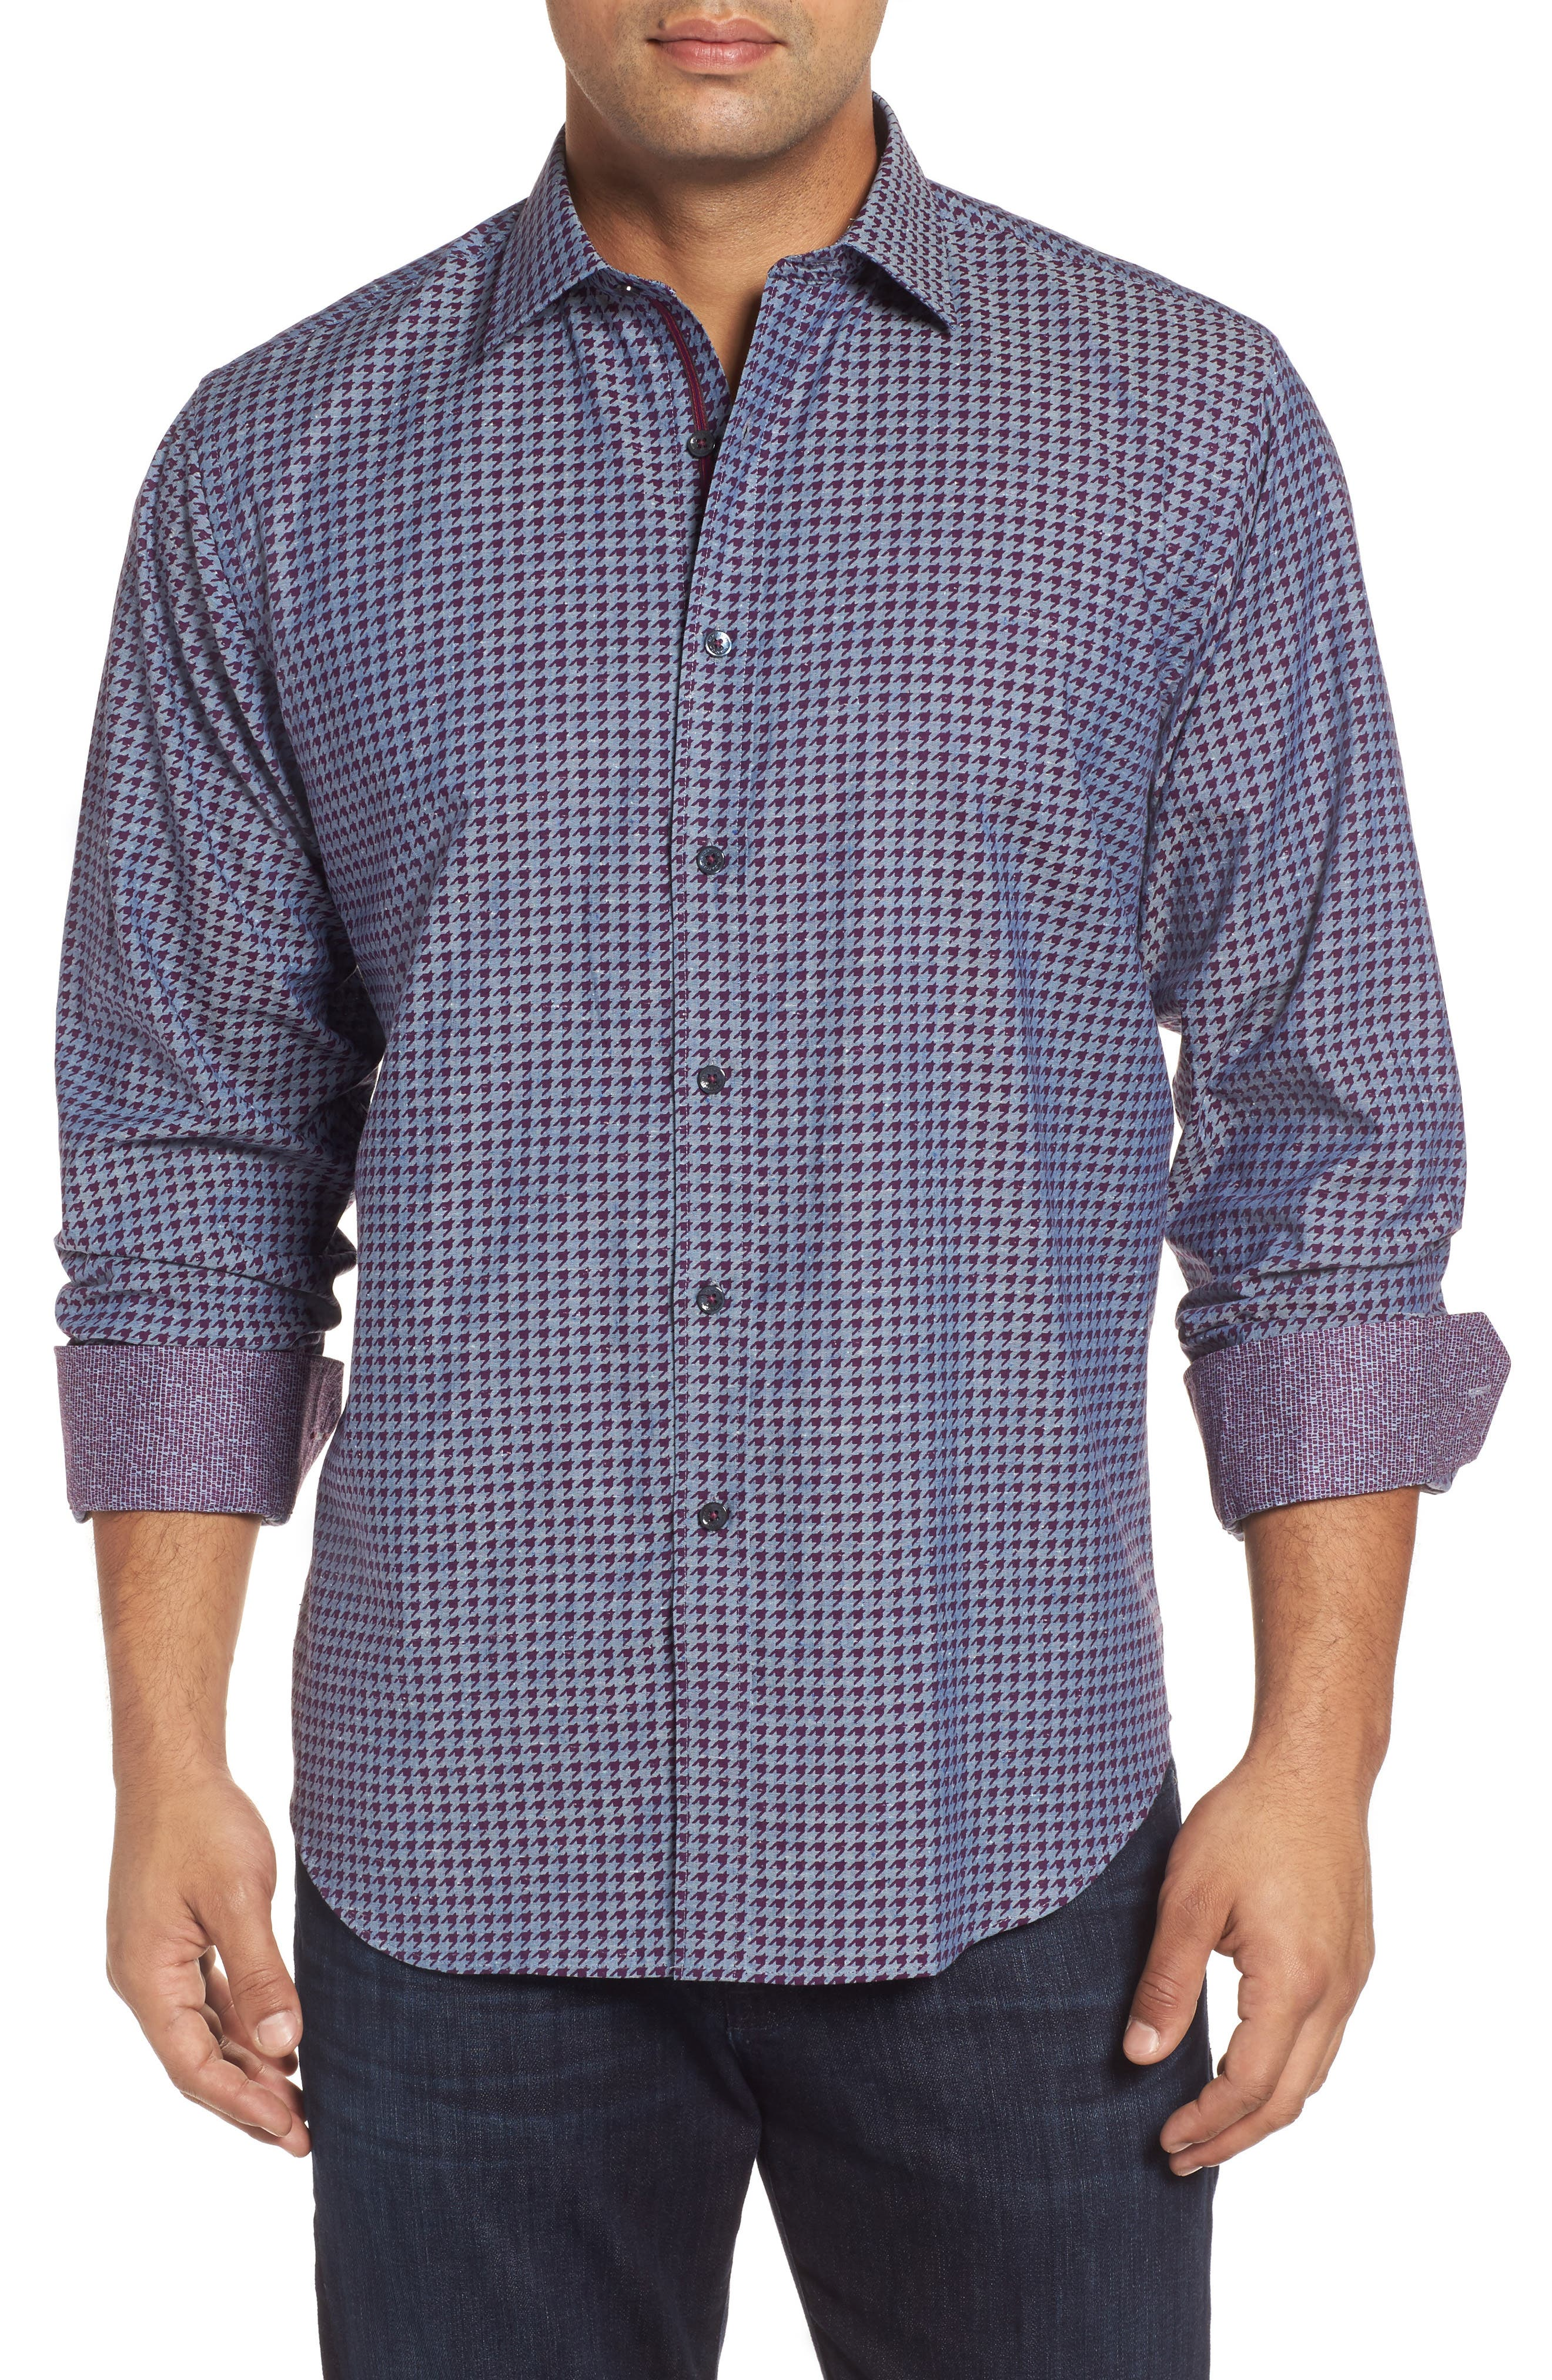 Main Image - Bugatchi Classic Fit Houndstooth Print Sport Shirt